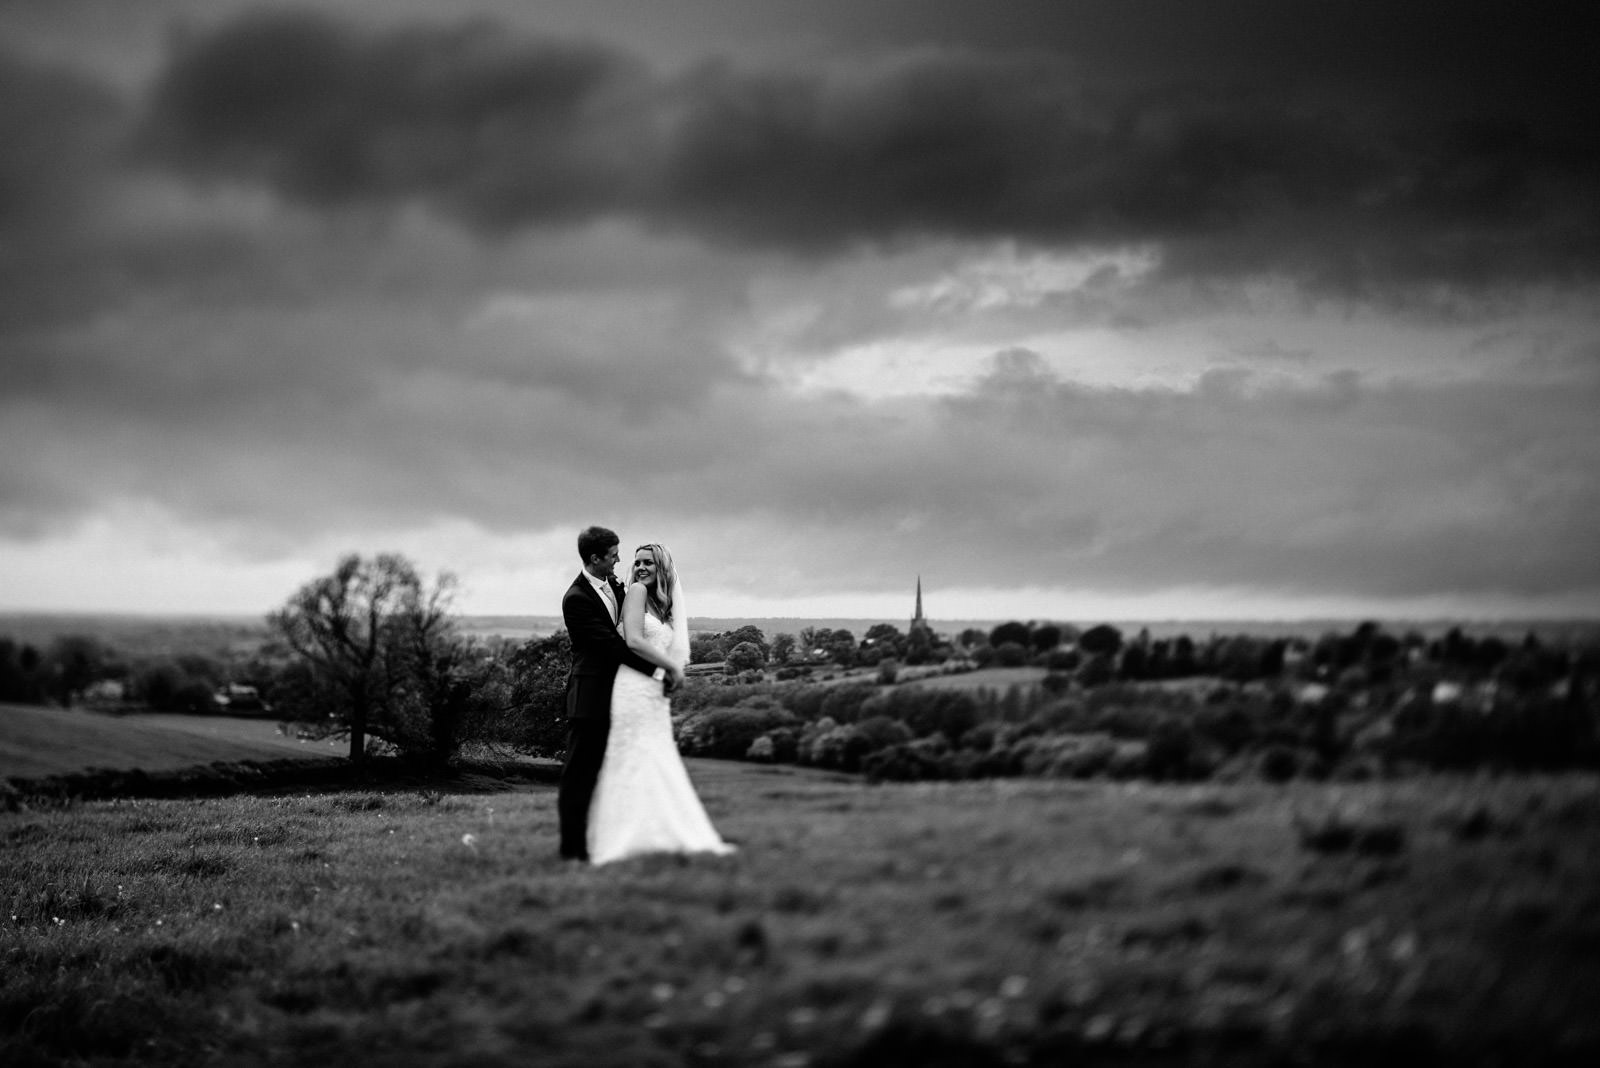 Home Farm Braunston Wedding